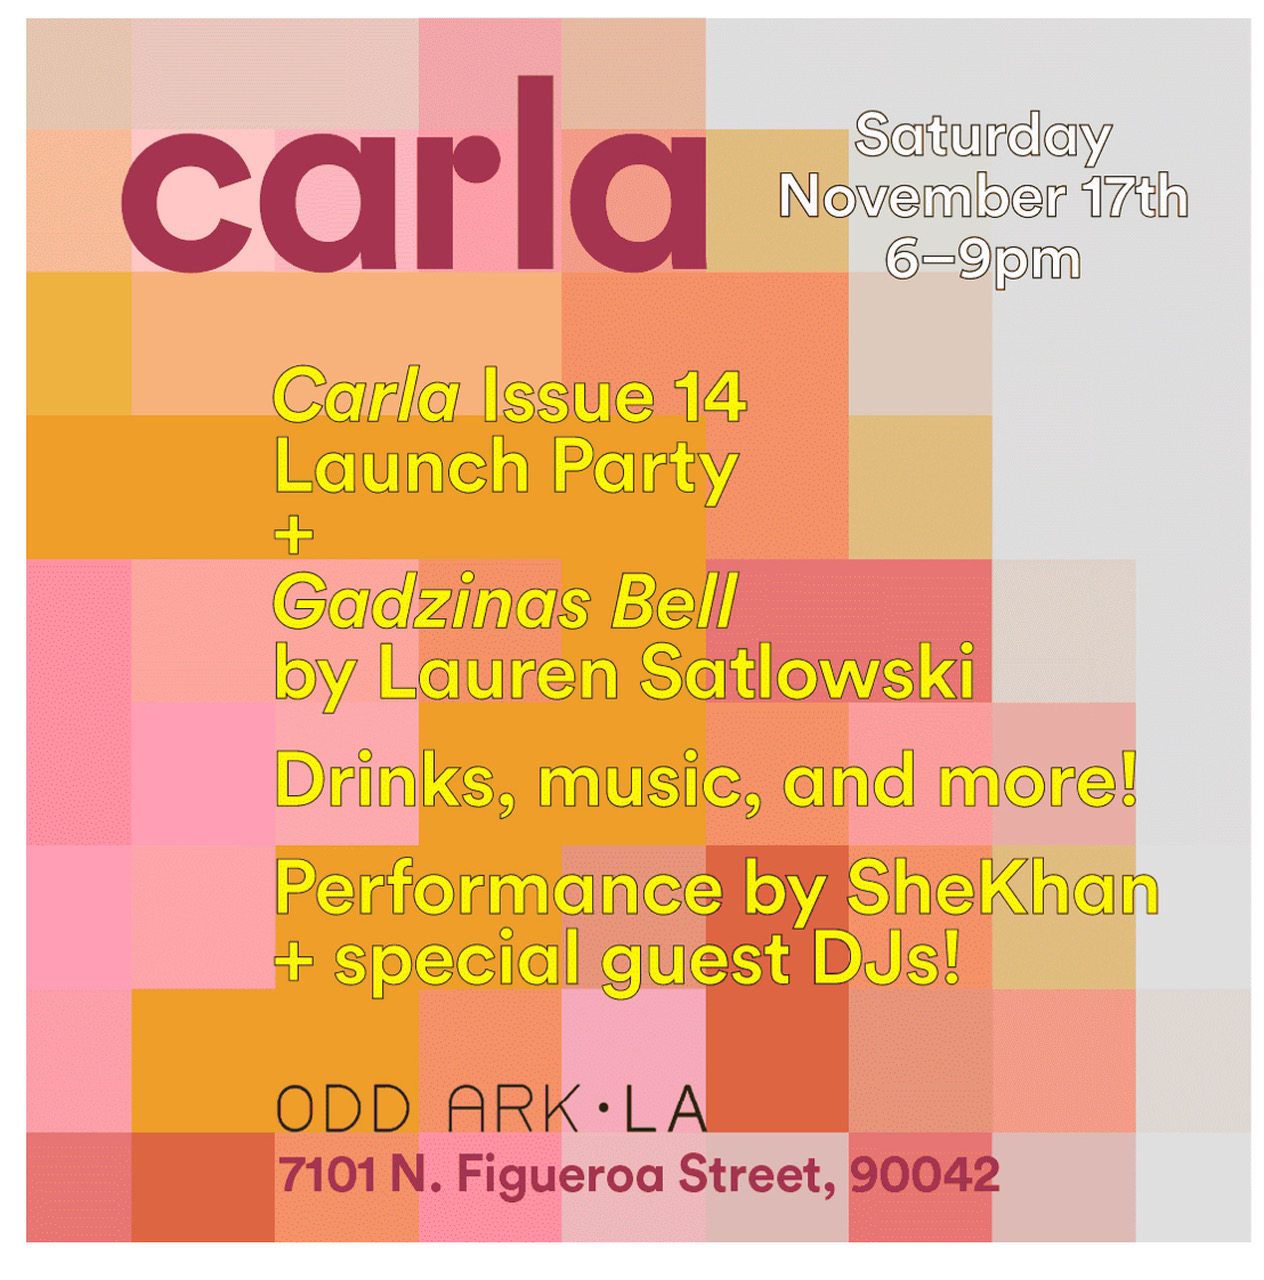 - Join us Saturday November 17, 6-9pm as we co-host and celebrate the Launch of Carla issue#14 at ODD ARK•LA. Come get your free issue, have a drink, and see a live performance by SHEKHAN and guest DJ's.Currently on view at Odd Ark• LA is Gadzinas Bell by Lauren Satlowski.